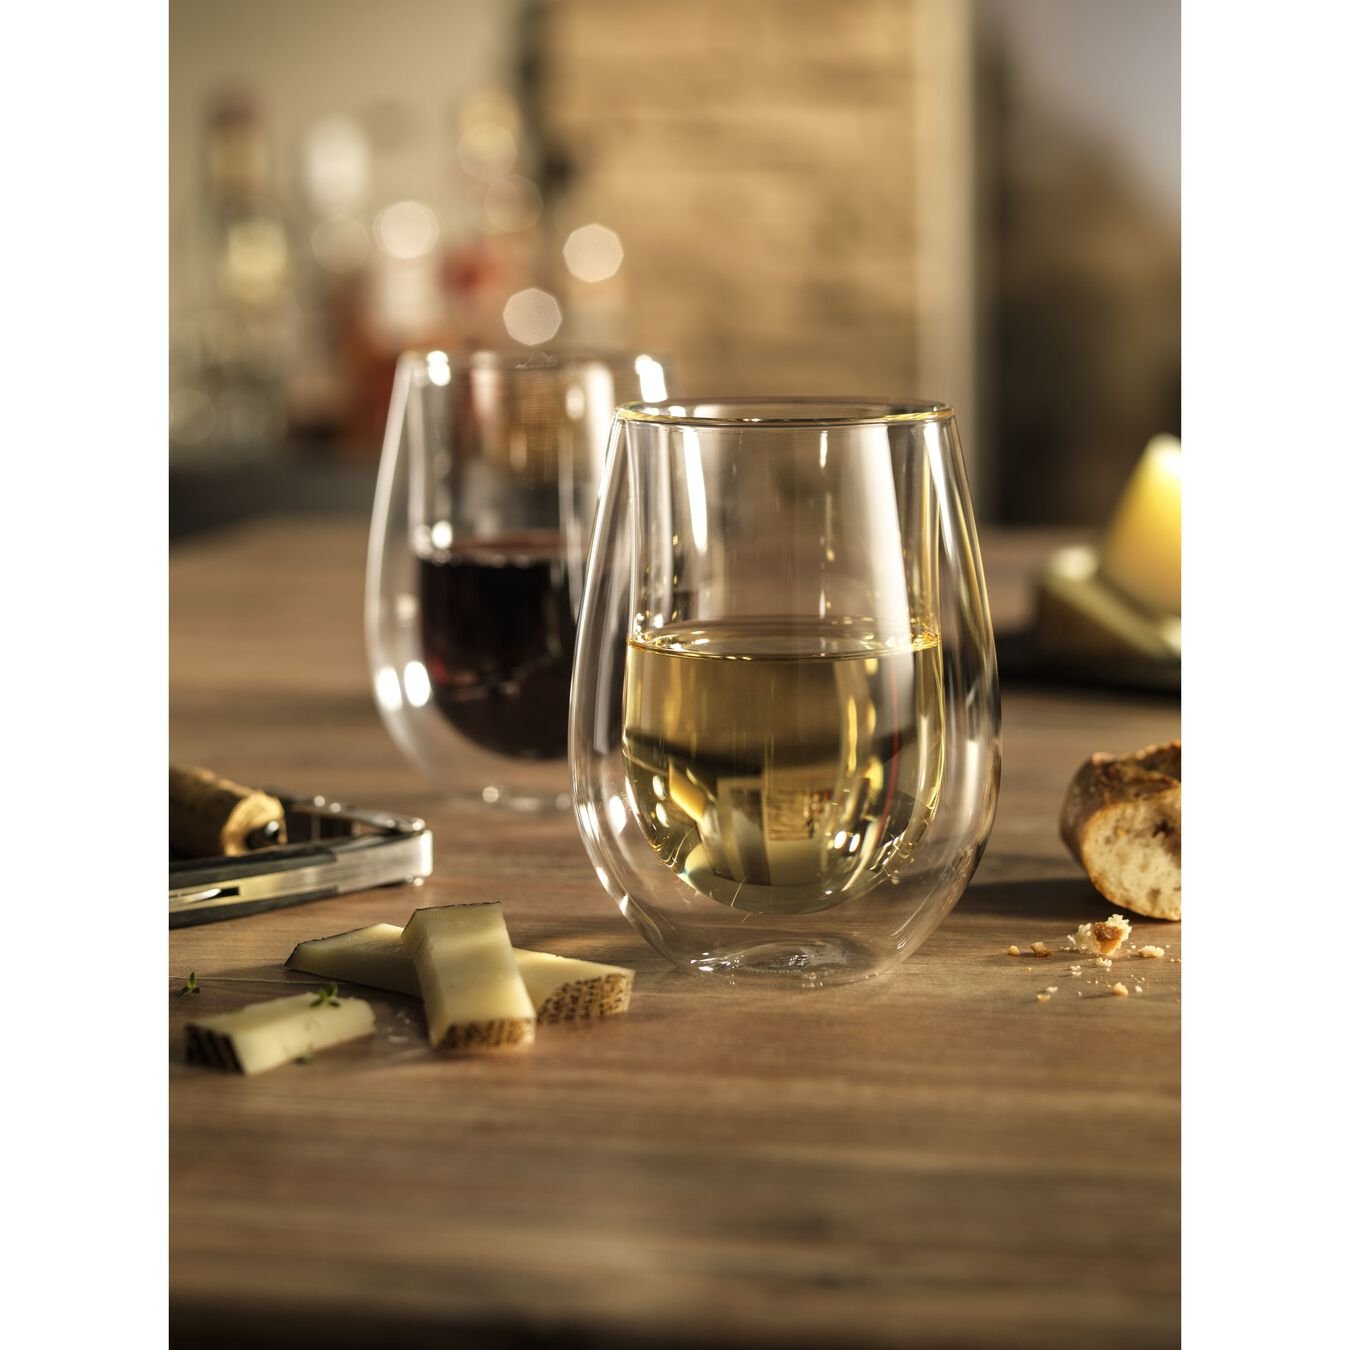 94807 / 1, Double wall glas Sommelier set,,large 2